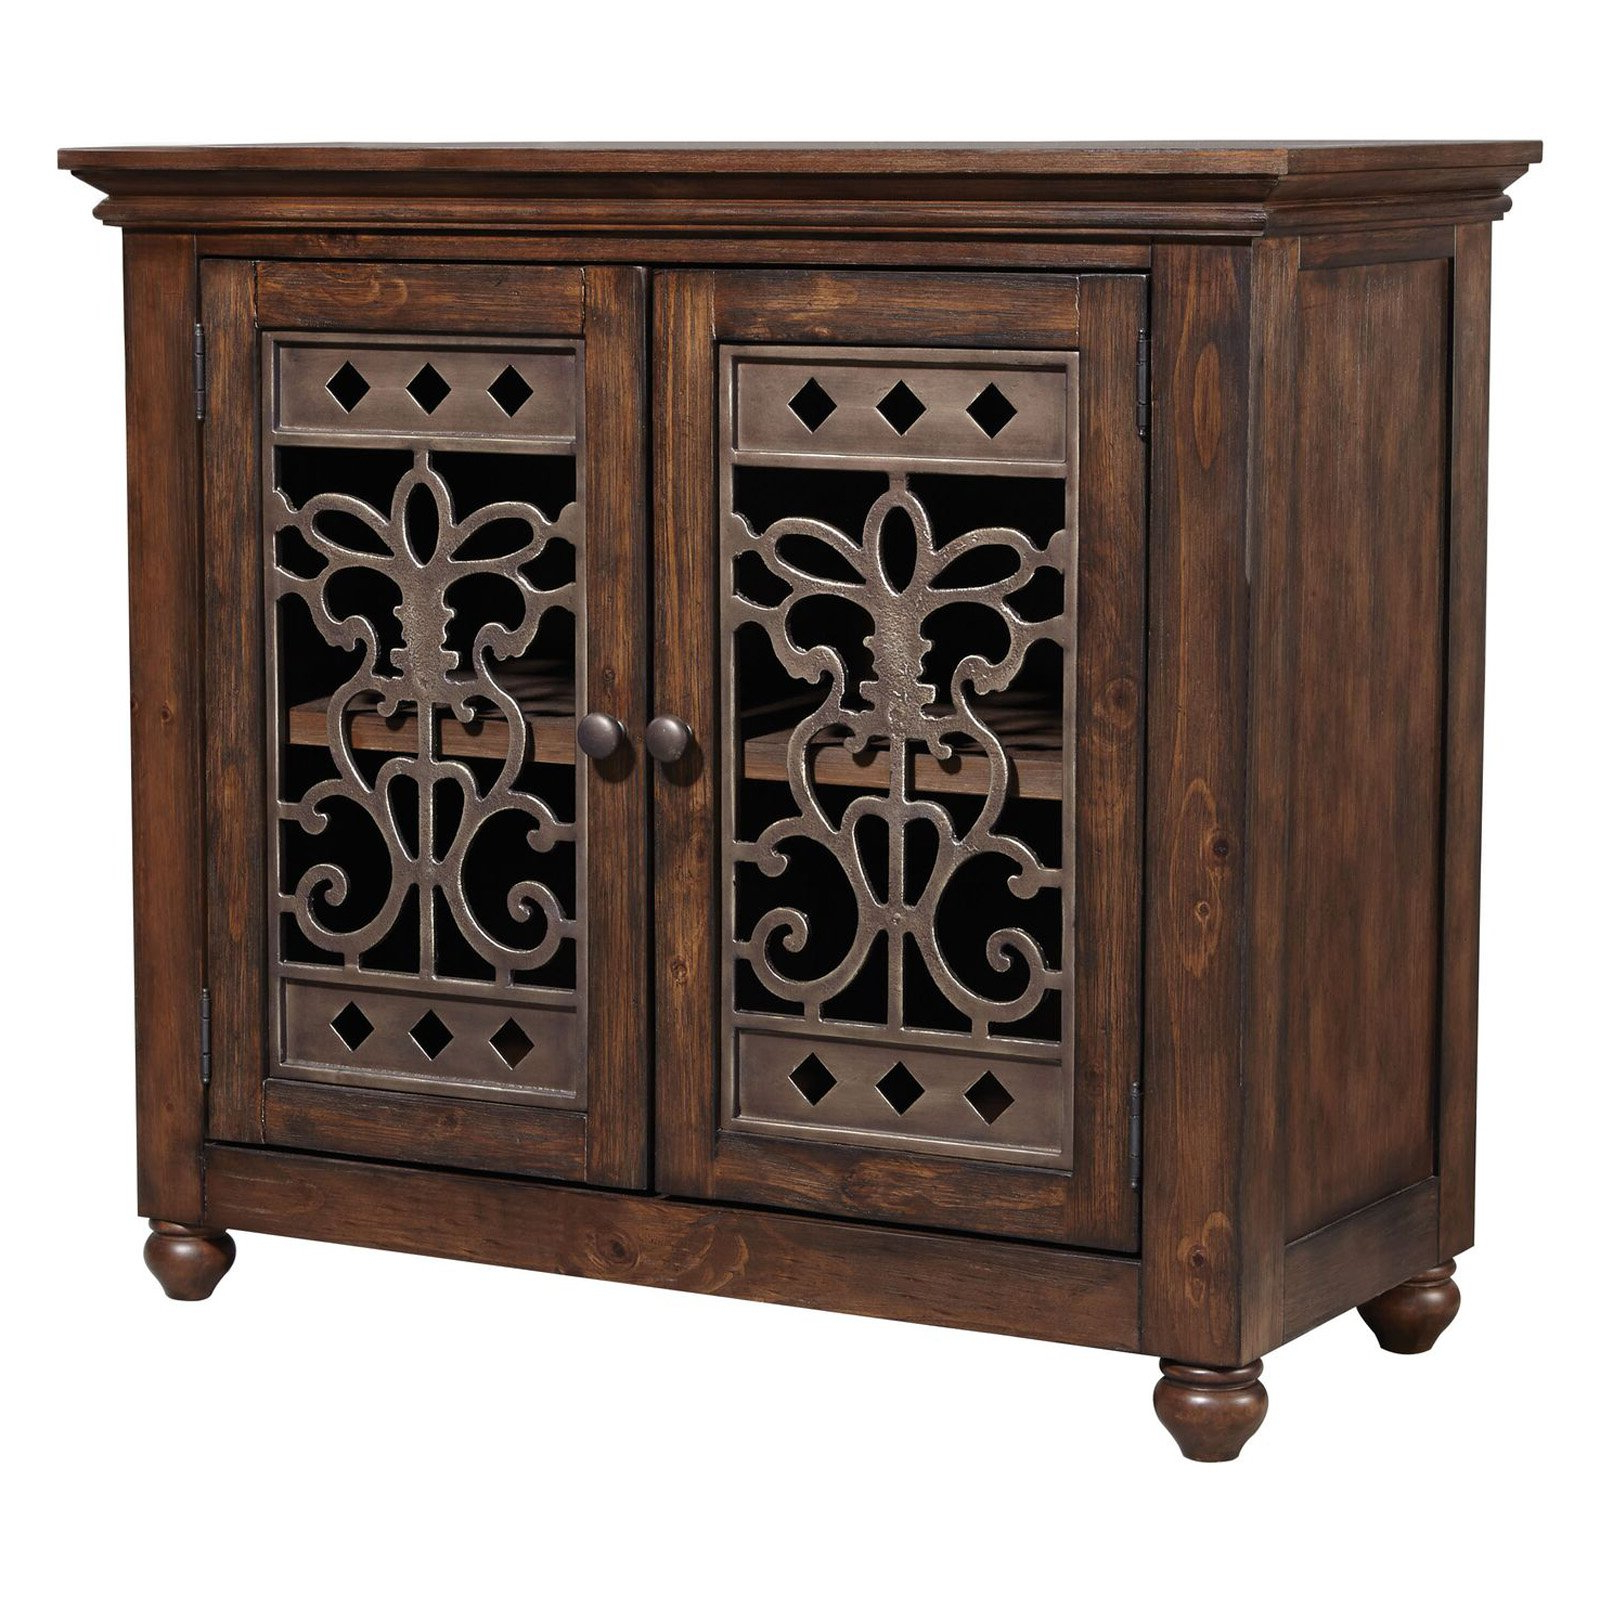 Standard Furniture Paisley Court 2 Door Buffet | Products In In Kronburgh Sideboards (View 17 of 20)